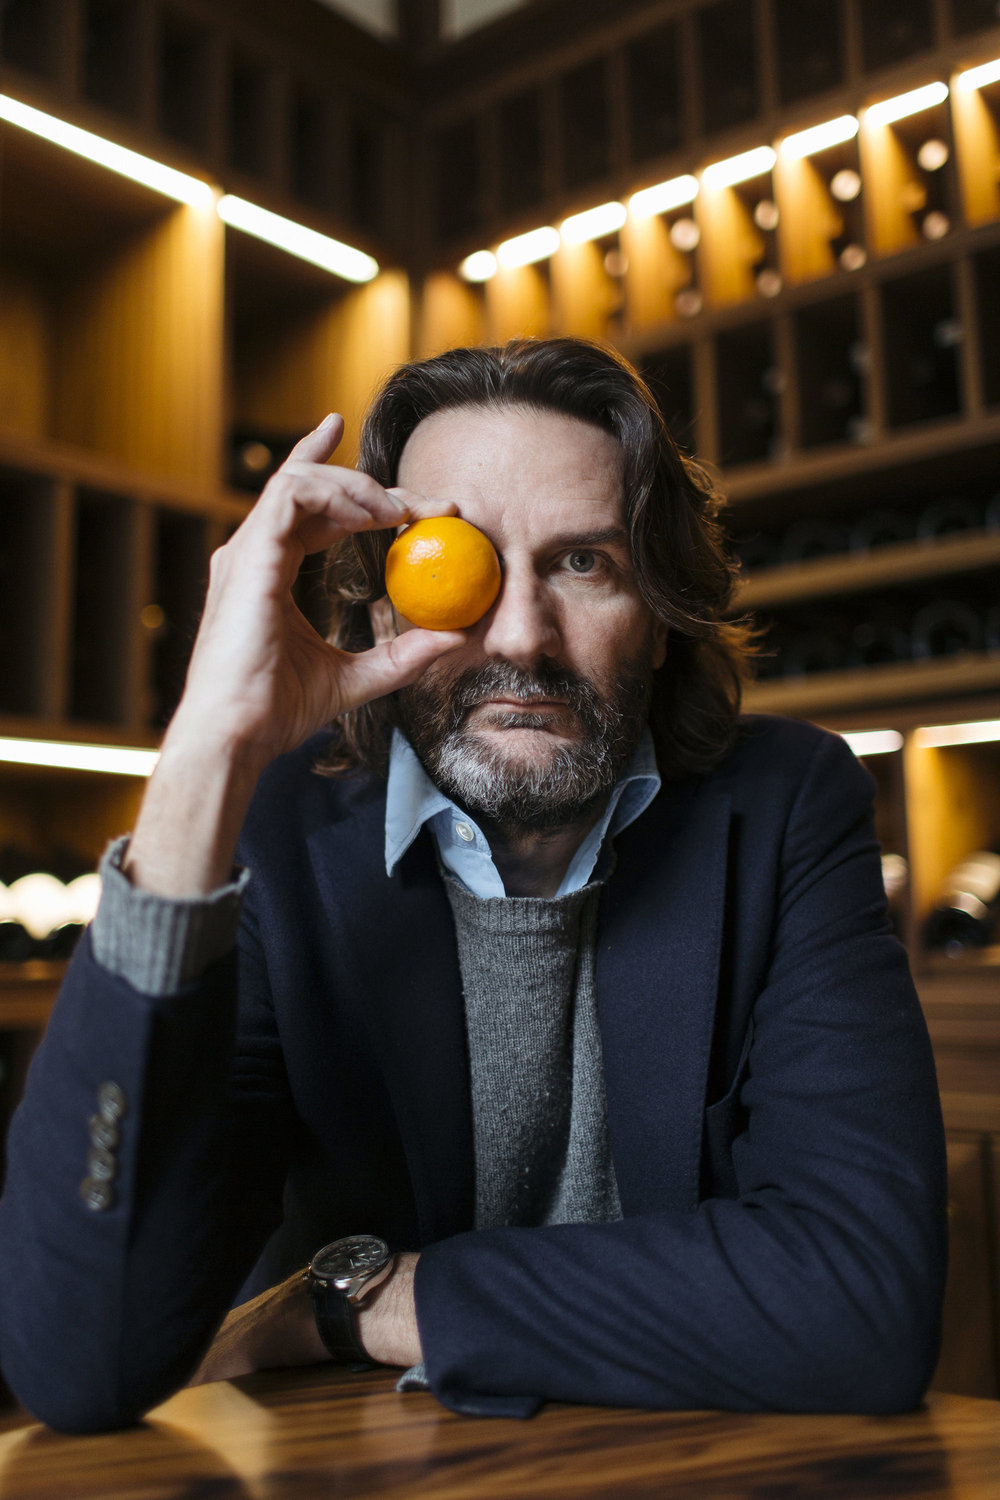 BOLD_BEIGBEDER_ORANGE-1.jpg